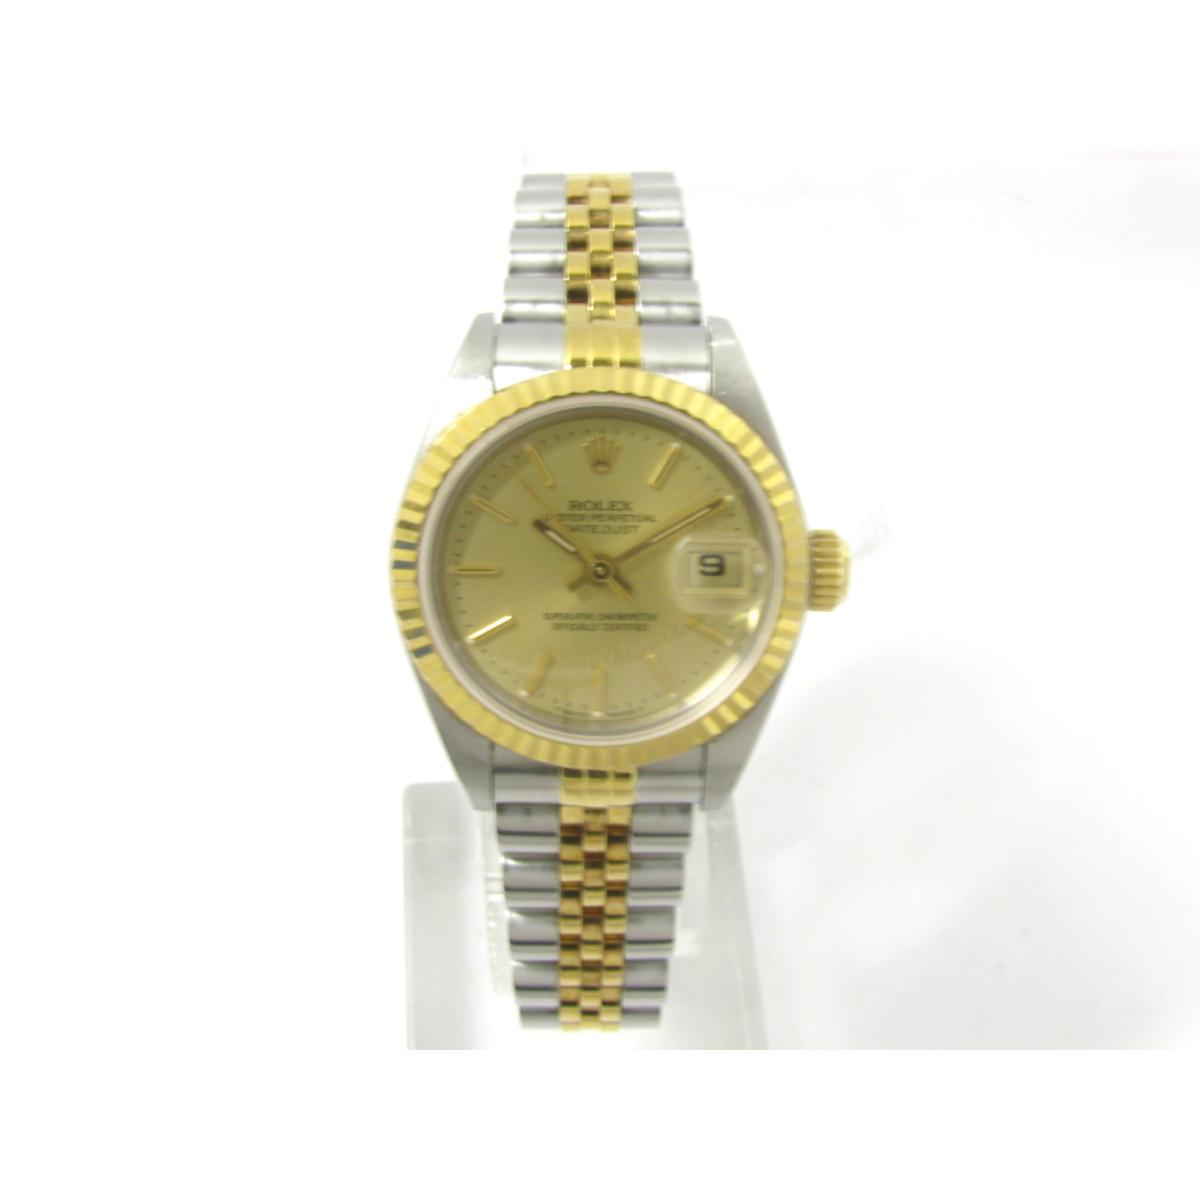 Authentic ROLEX Datejust watch Women stainless steel (SS)XK18YG (yellow  gold) gold (69173) 611c34ce01